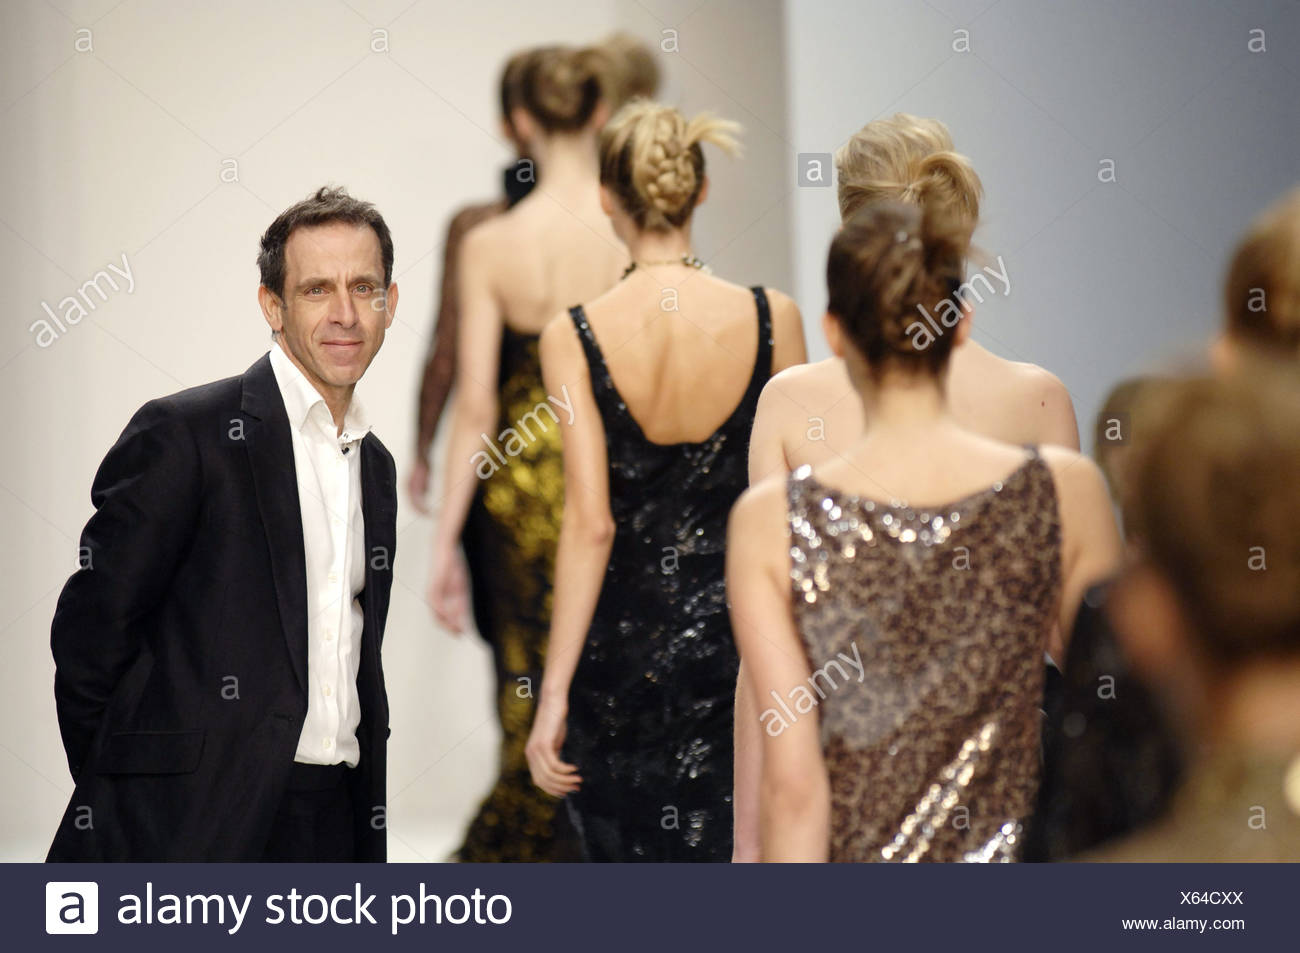 Ben De Lisi London Ready To Wear Autumn Winter Designer Ben De Lisi Wearing White Shirt And Black Blazer Watching As Line Of Stock Photo Alamy